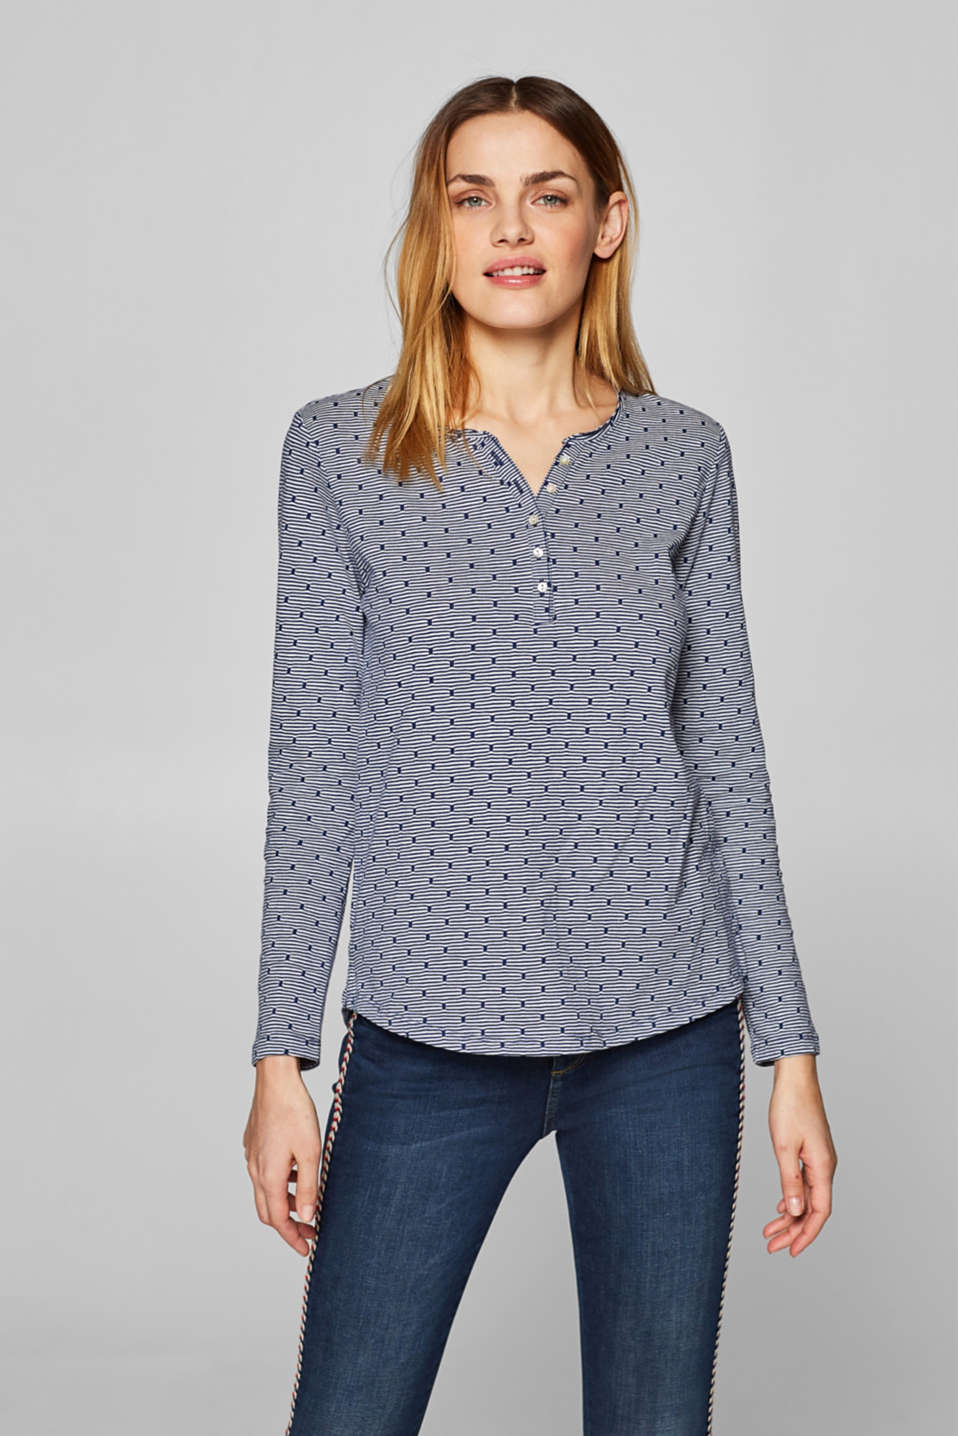 Esprit - Printed long sleeve Henley top, 100% cotton